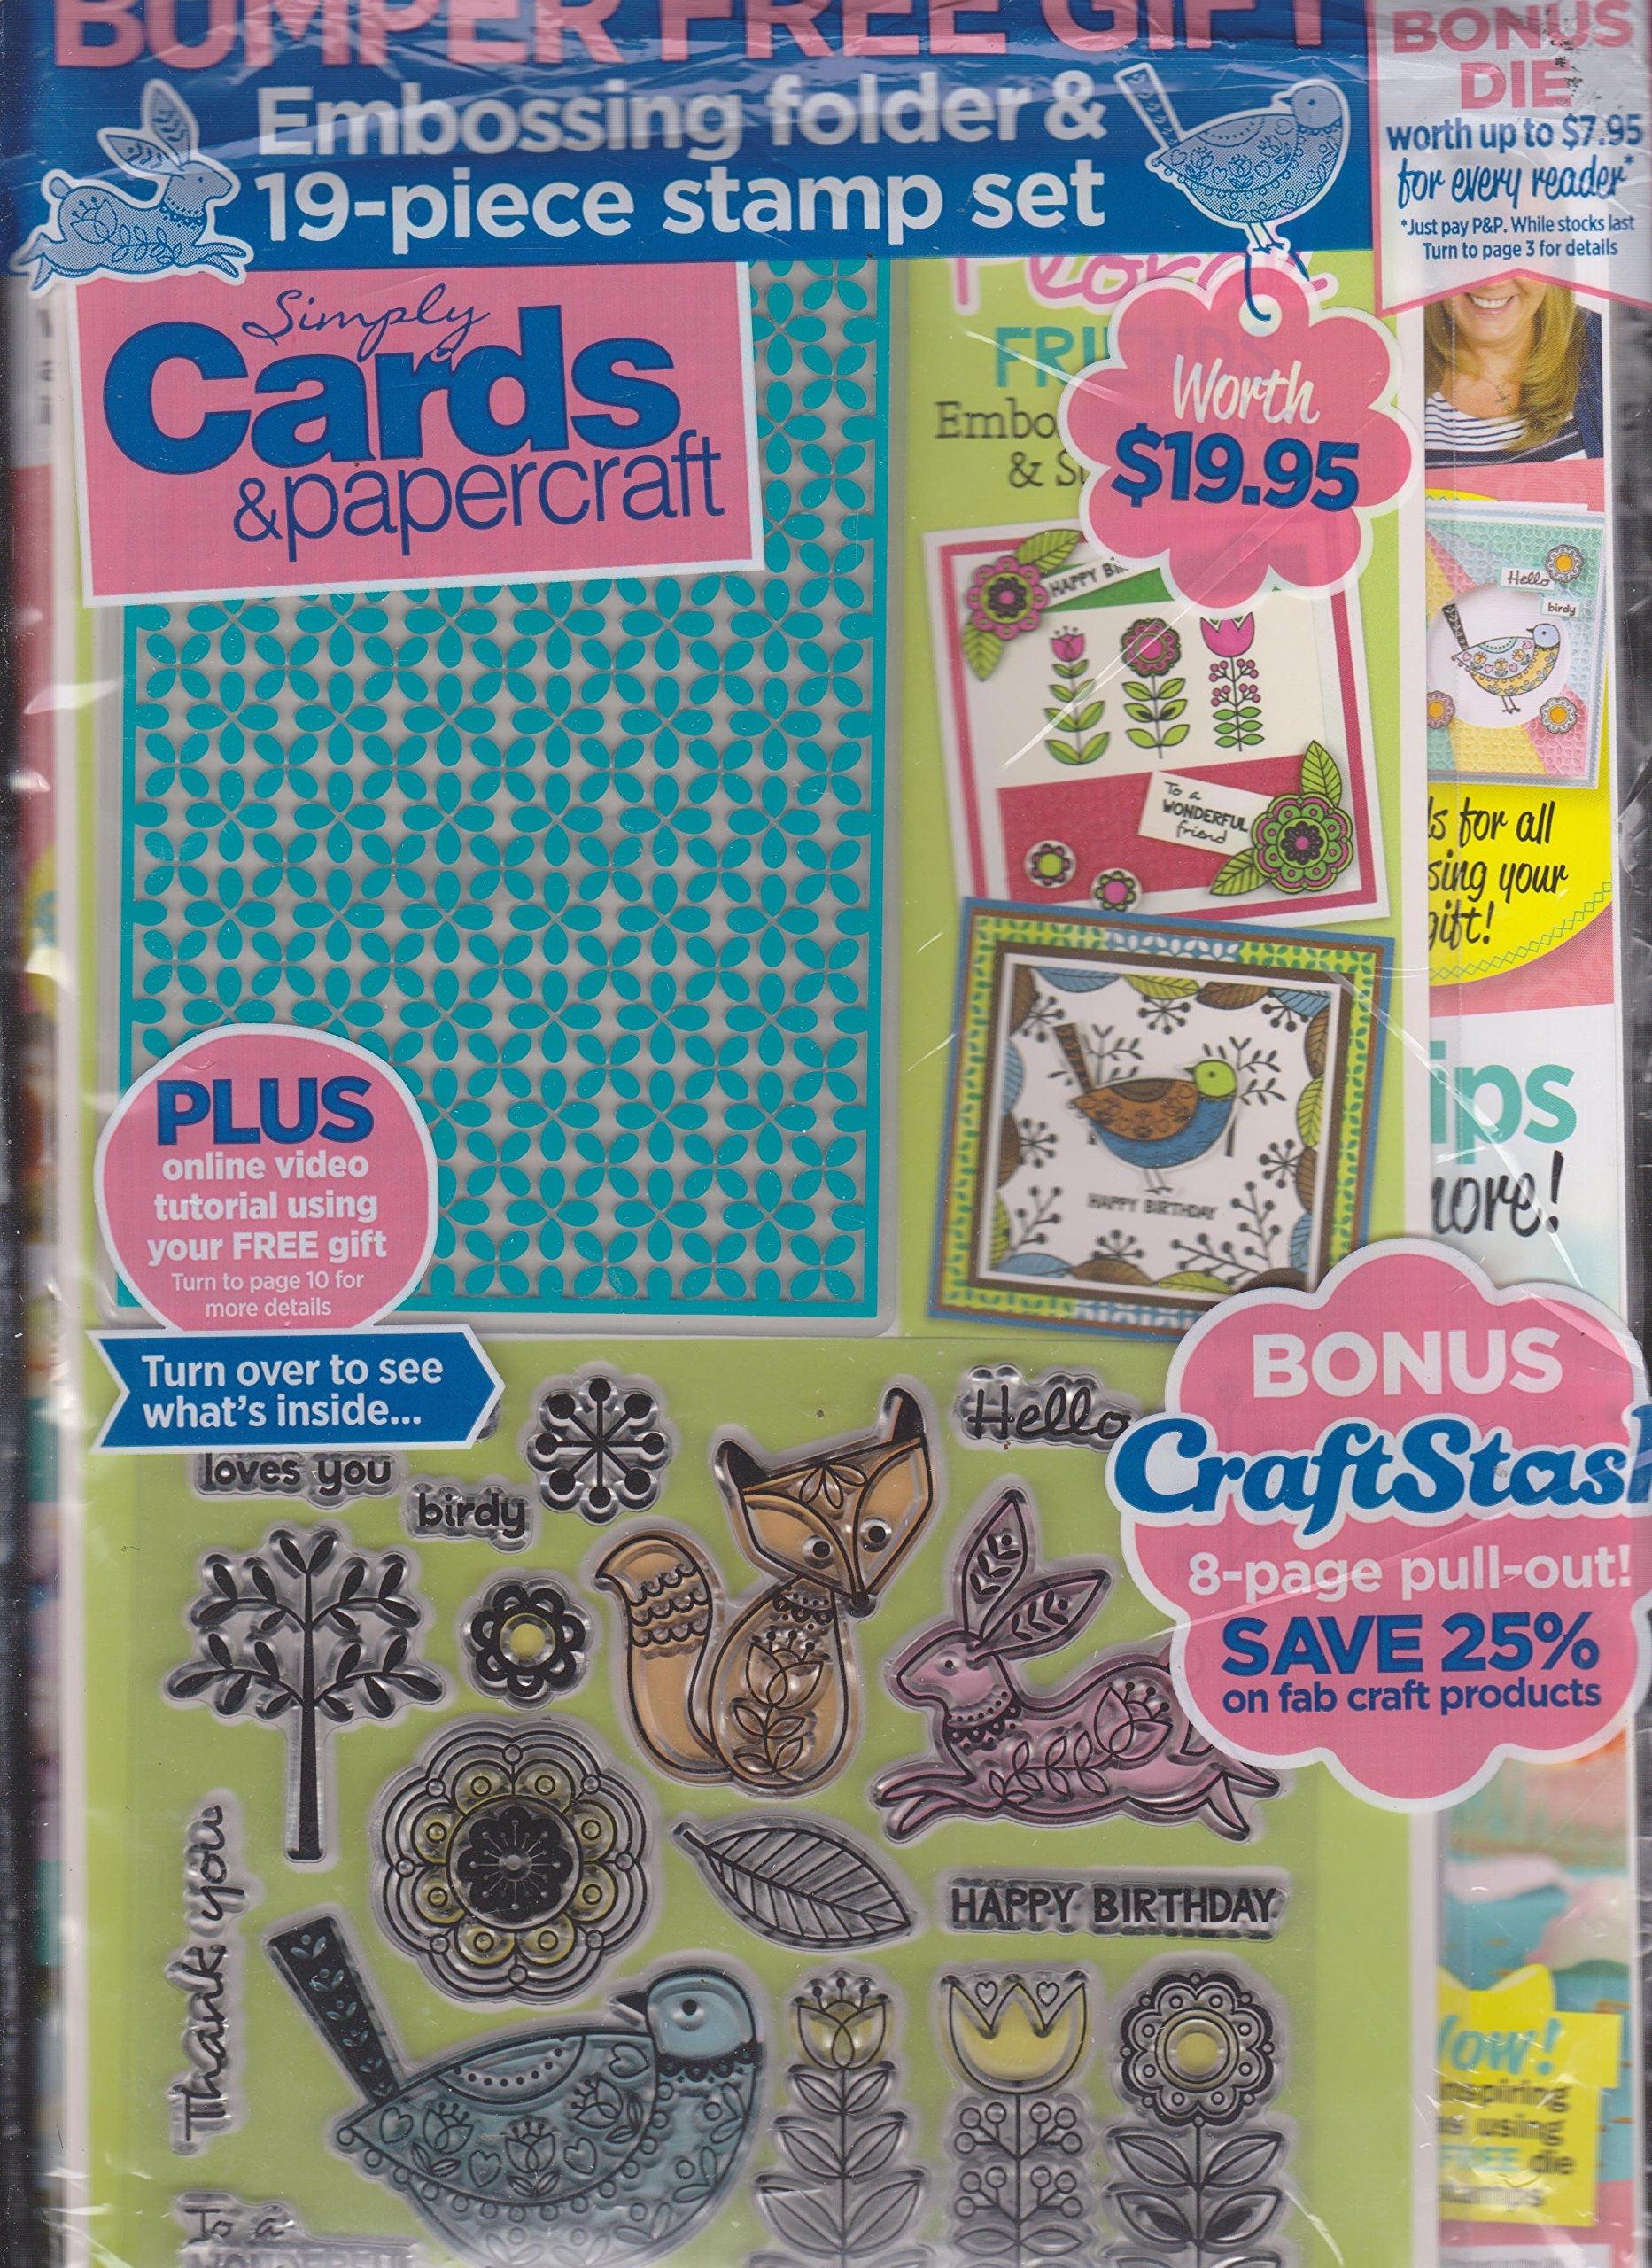 Simply Cards & Papercraft Magazine Issue 170 Embossing Folder & Stamp Set Included pdf epub